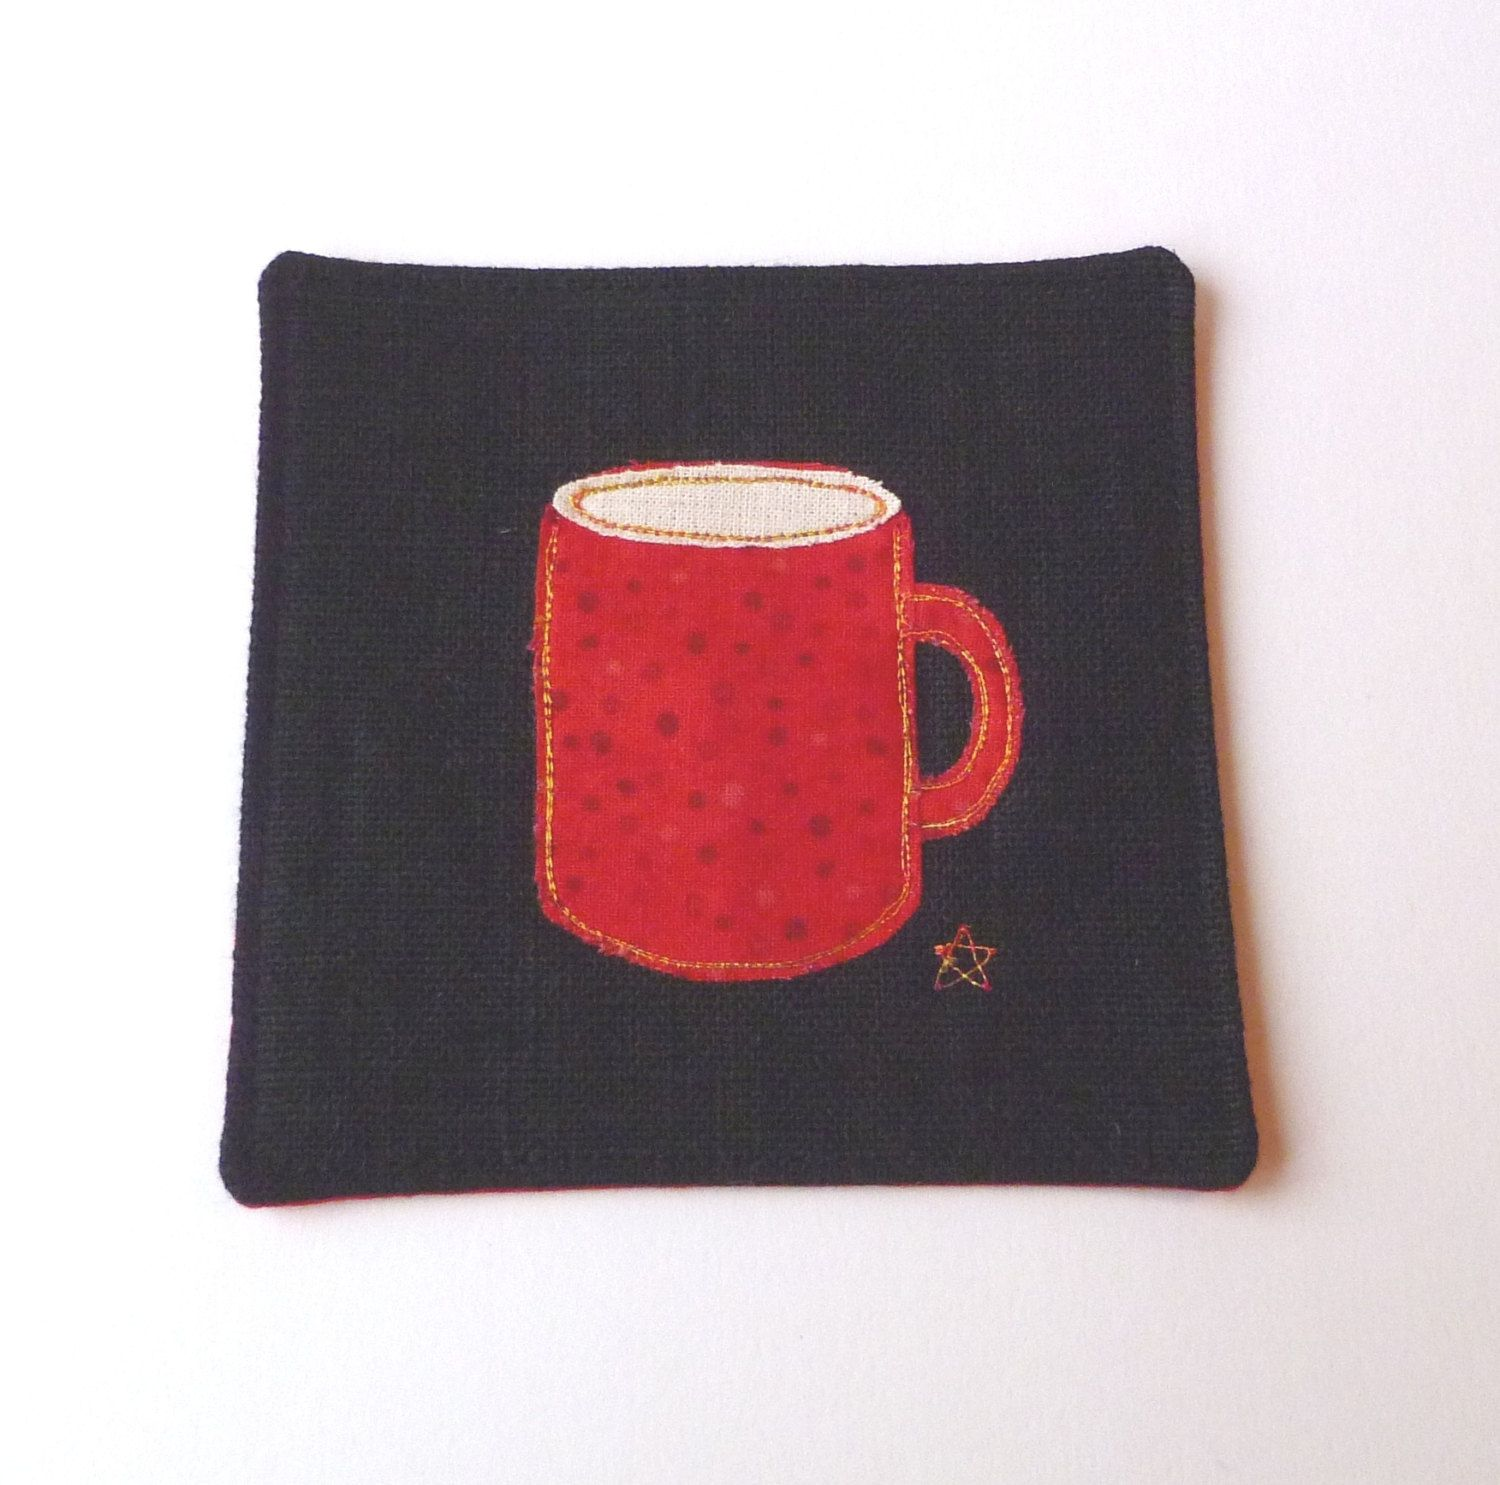 Fabric Coaster For Him Or Her Fun Vibrant Red Mug Design Drinks Mat In Black Linen With Speckled Red Cotton Fabric Handmade In The Home Details Fabri